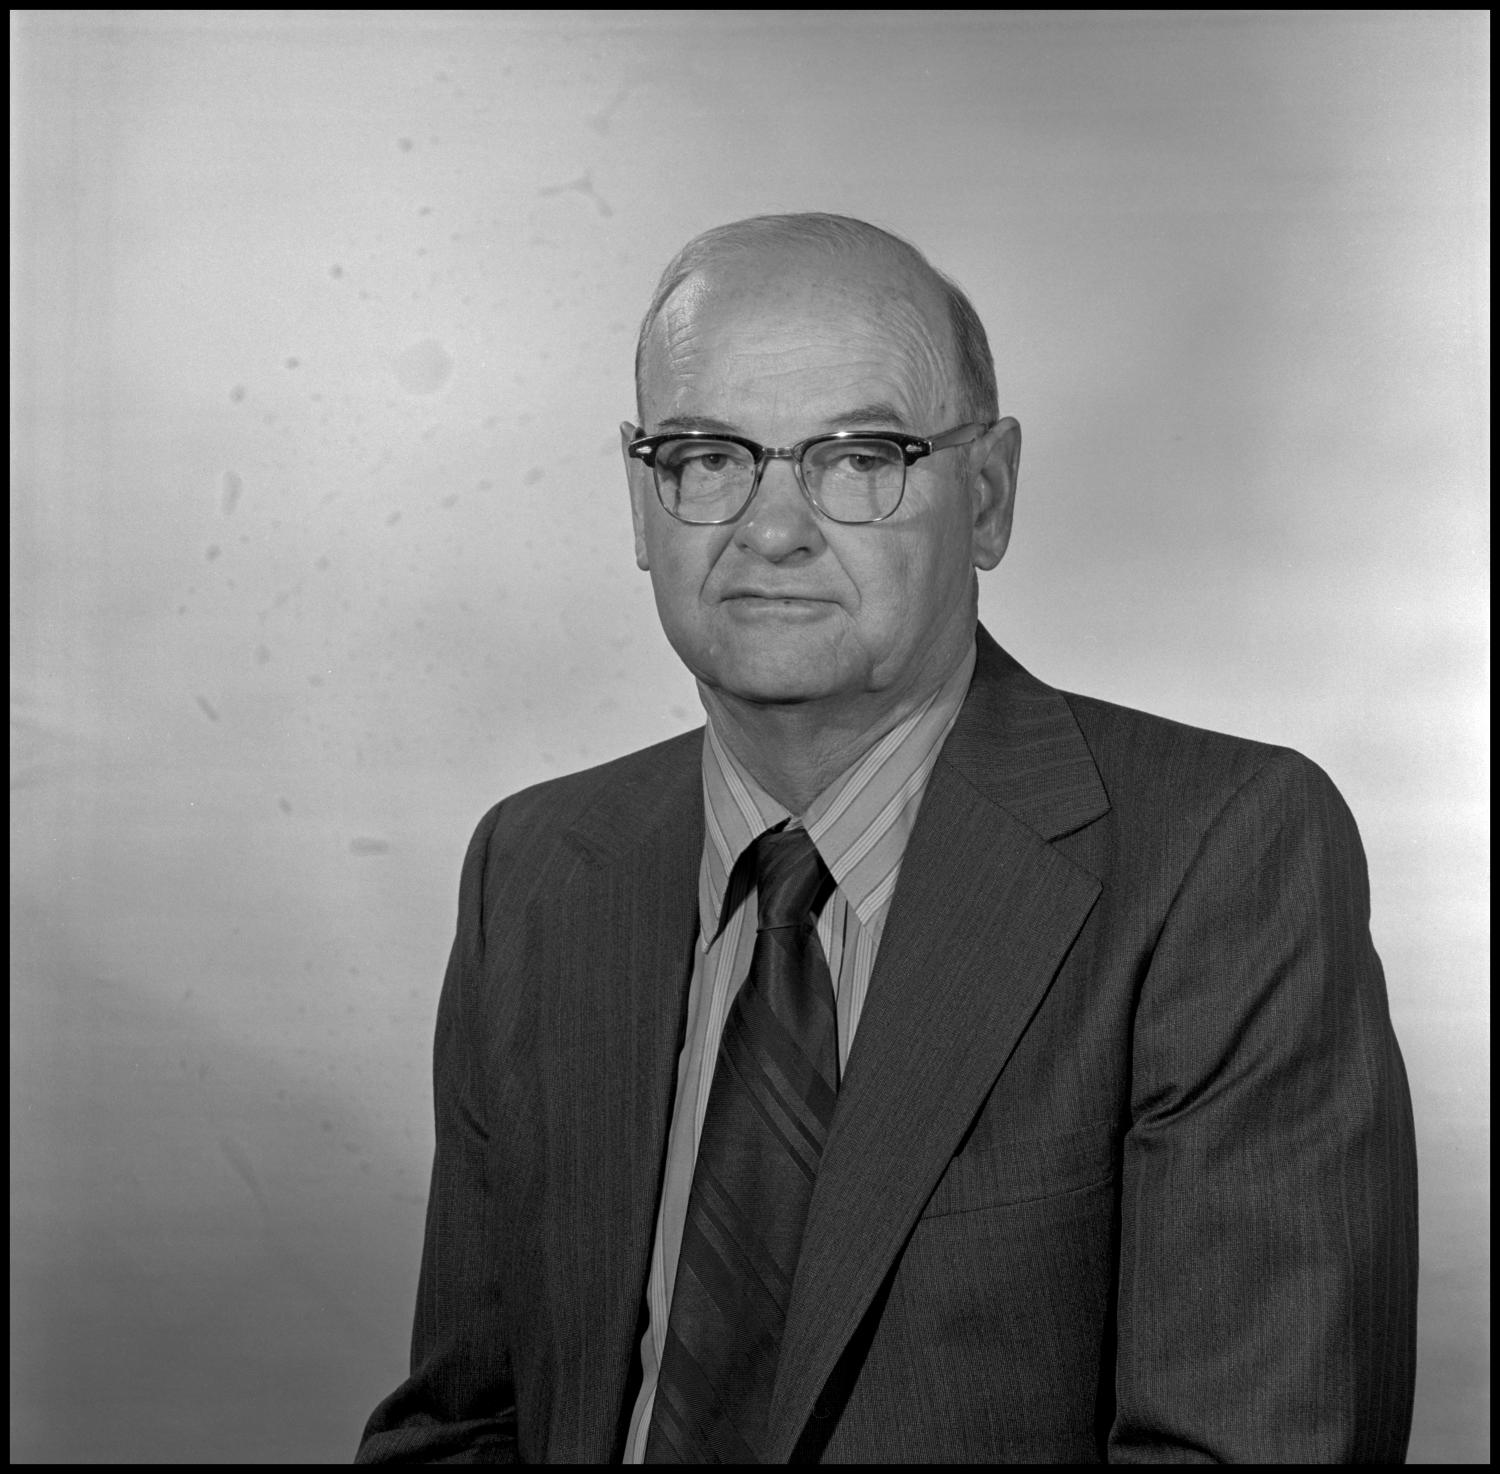 [Portrait of Garland Brookshear], Photograph of Garland Brookshear, a member of the Management faculty at NTSU, sitting for a portrait photo. He is wearing a suit with a striped shirt and tie, as well as a pair of glasses.,